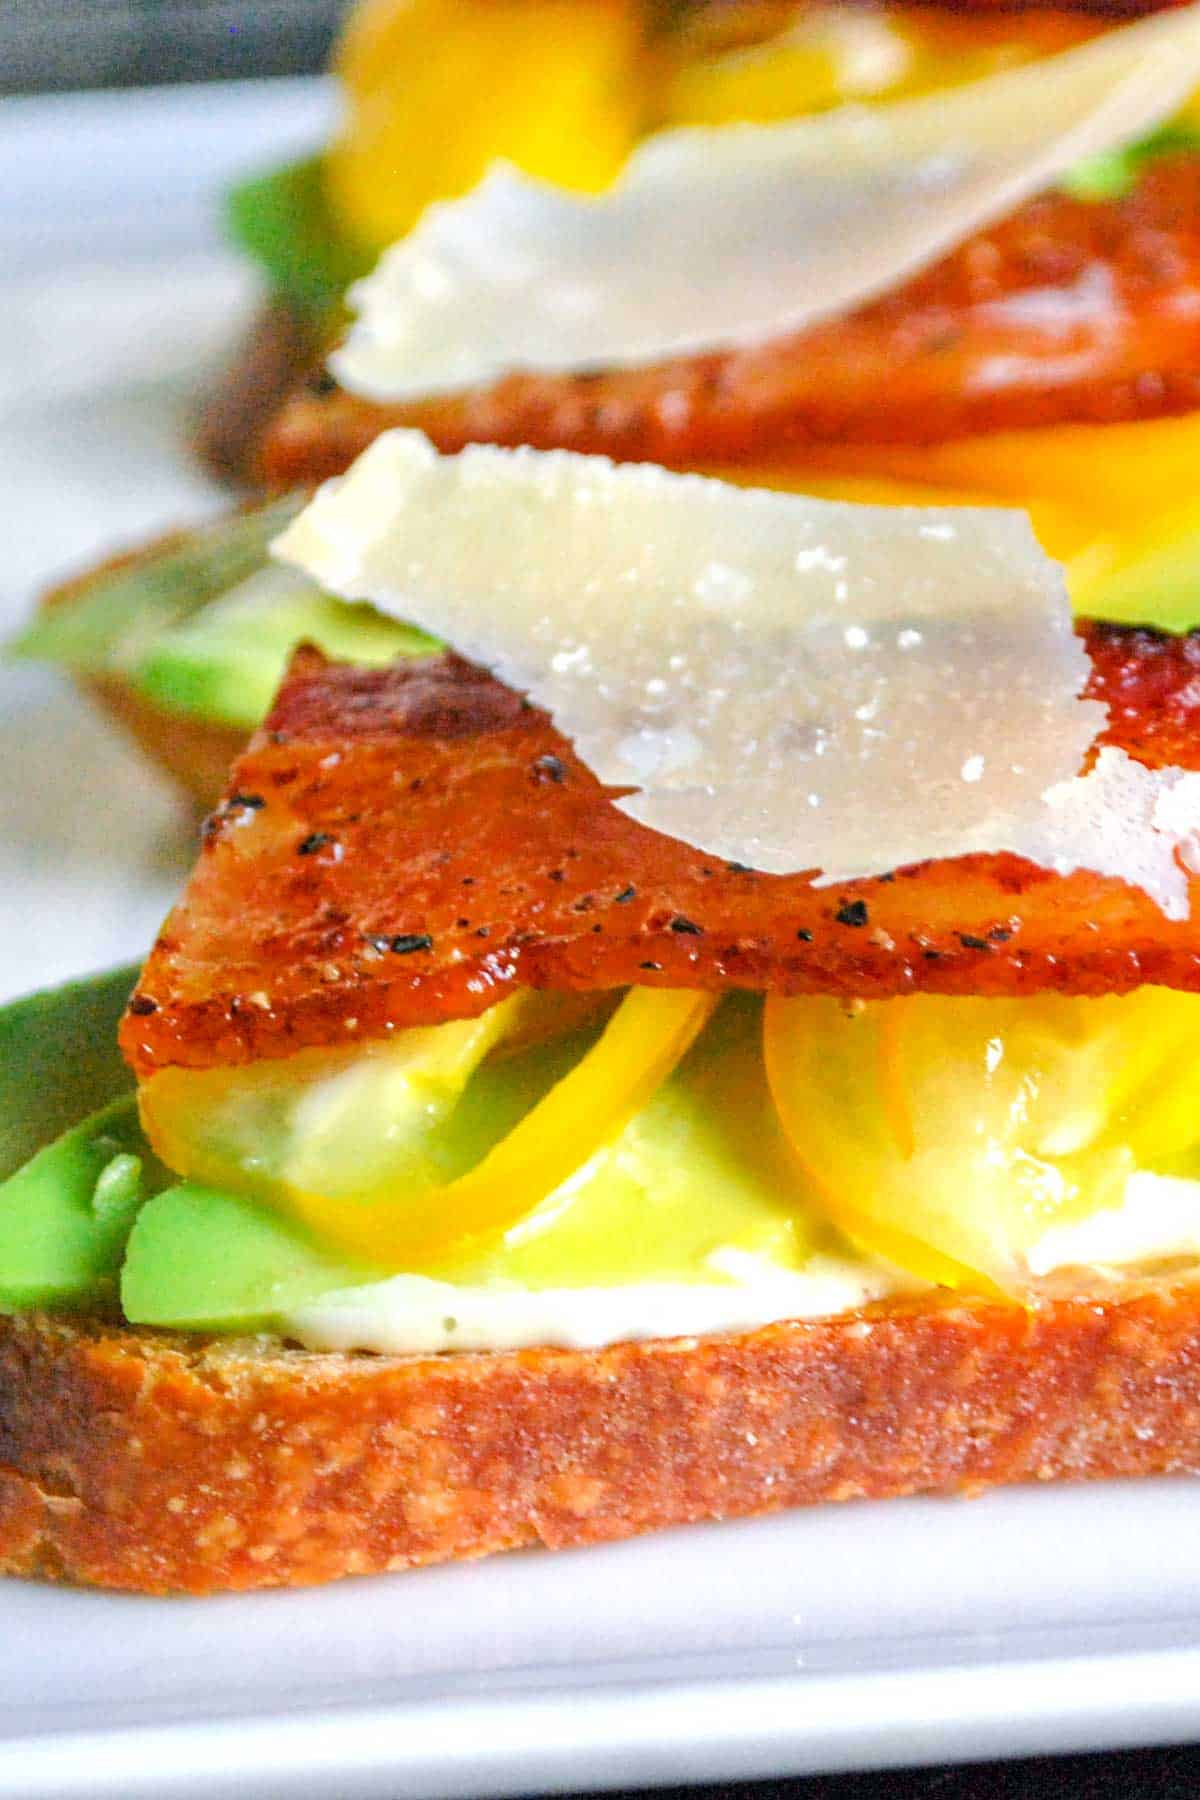 Open-Faced Sandwiches with Bacon, Tomato and Avocado